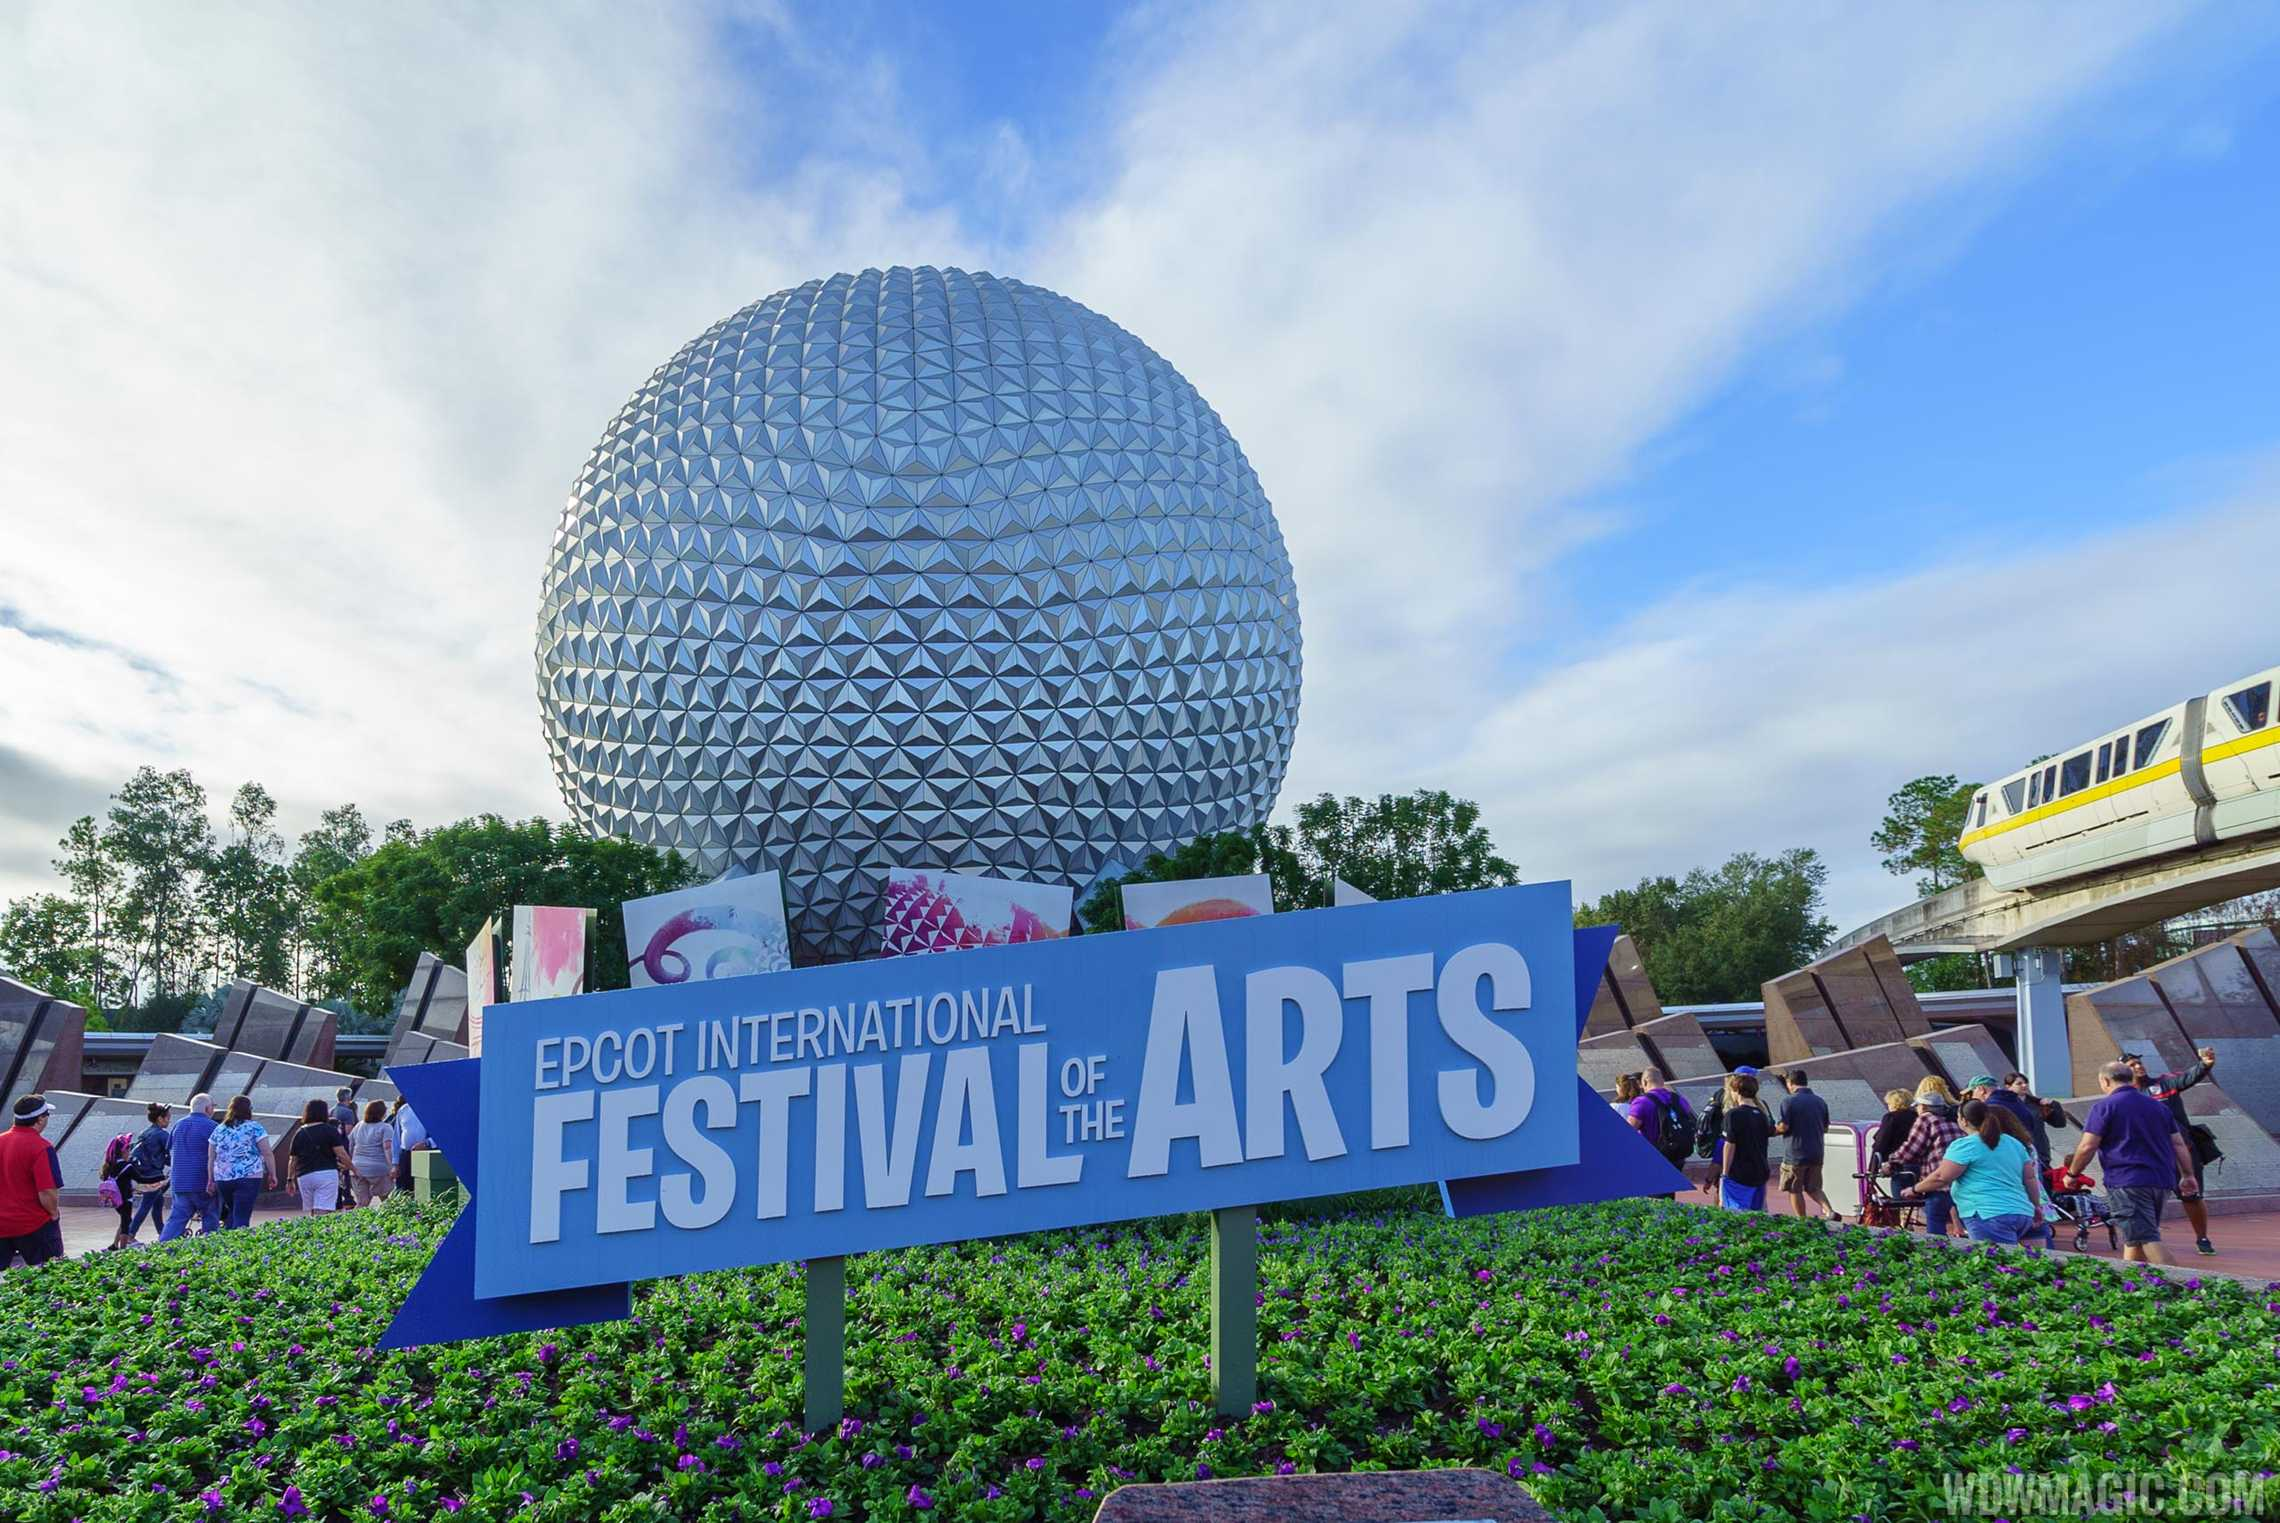 Epcot Festival of the Arts - Main entrance decor